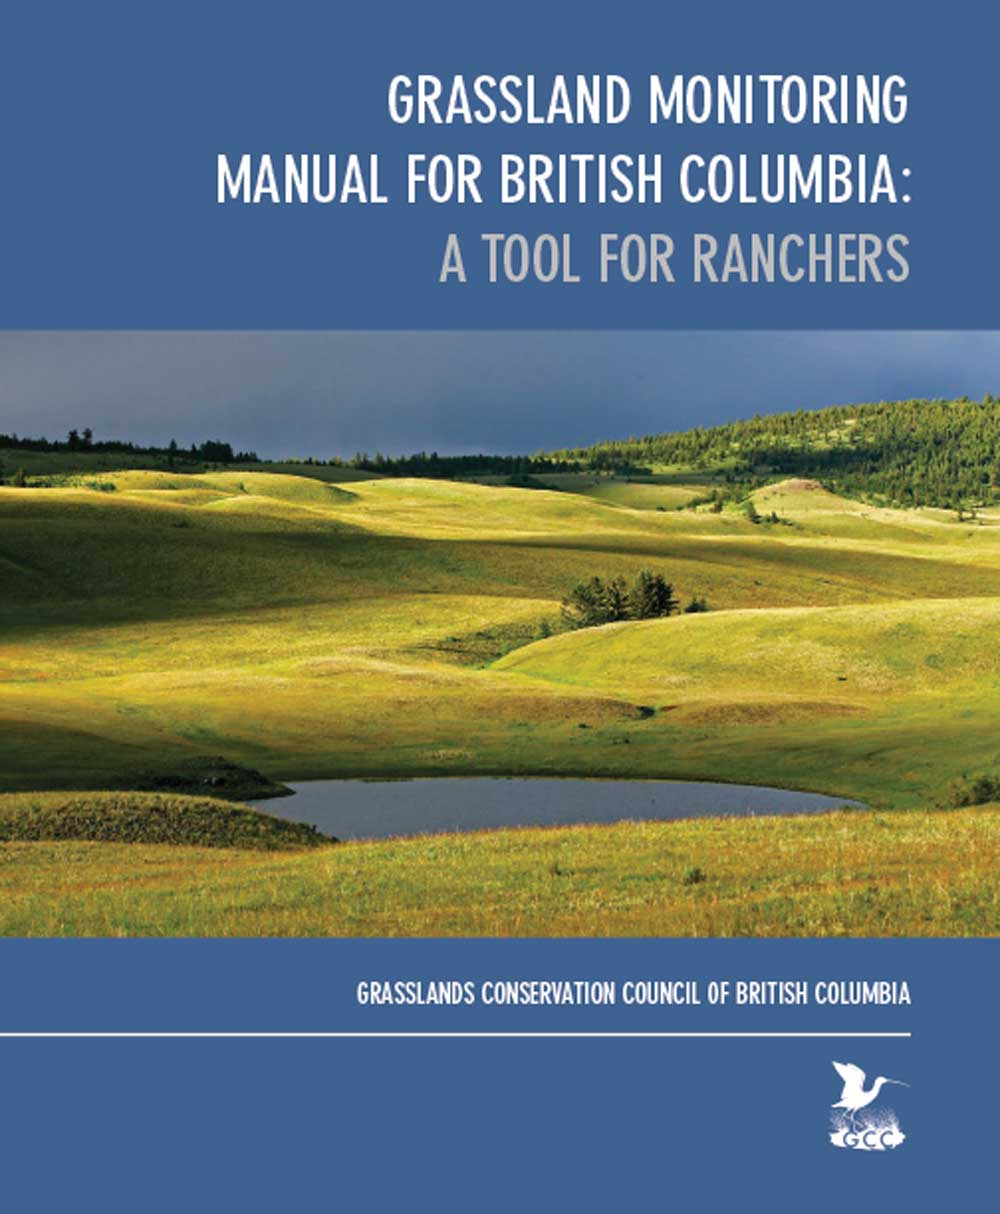 BC Grasslands Monitoring - A Tool for Ranchers